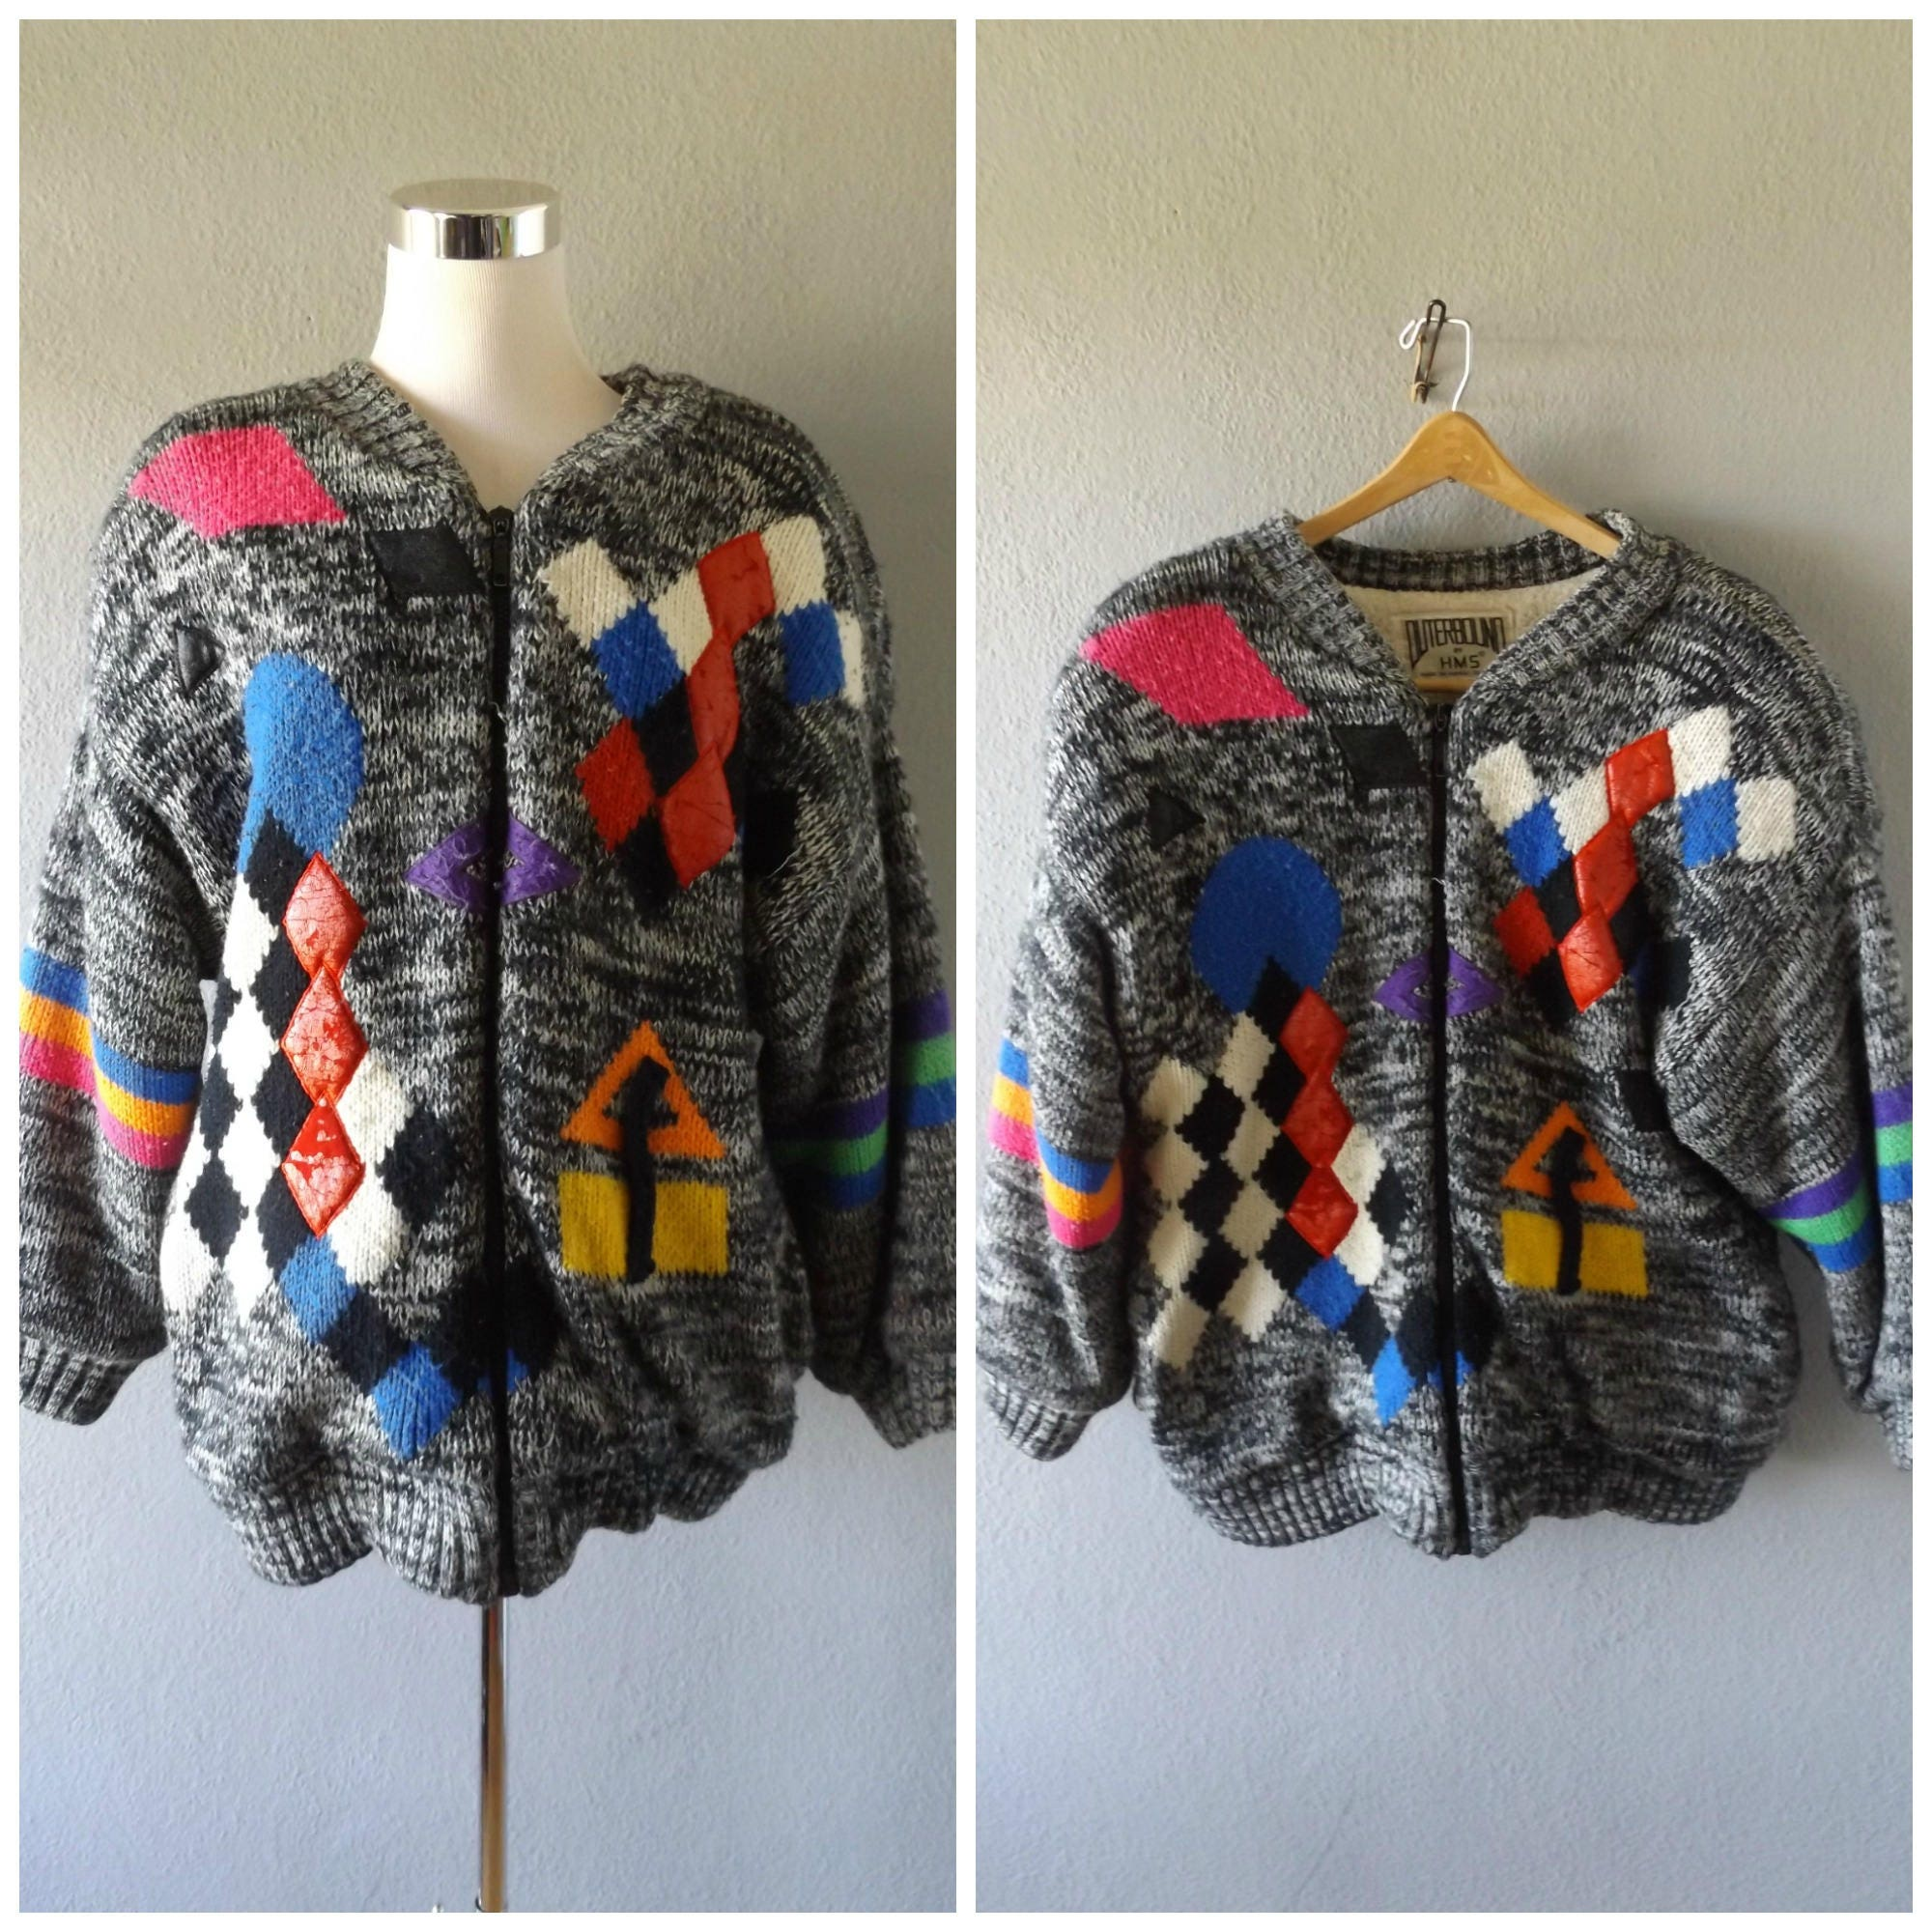 80s Sweatshirts, Sweaters, Vests | Women Vintage 80S Saved By The Bell Sweater - Size Large Abstract Check Print Chunky Knit Jacket 1980S Ladies Coat Leather Geometric Shirt $89.10 AT vintagedancer.com